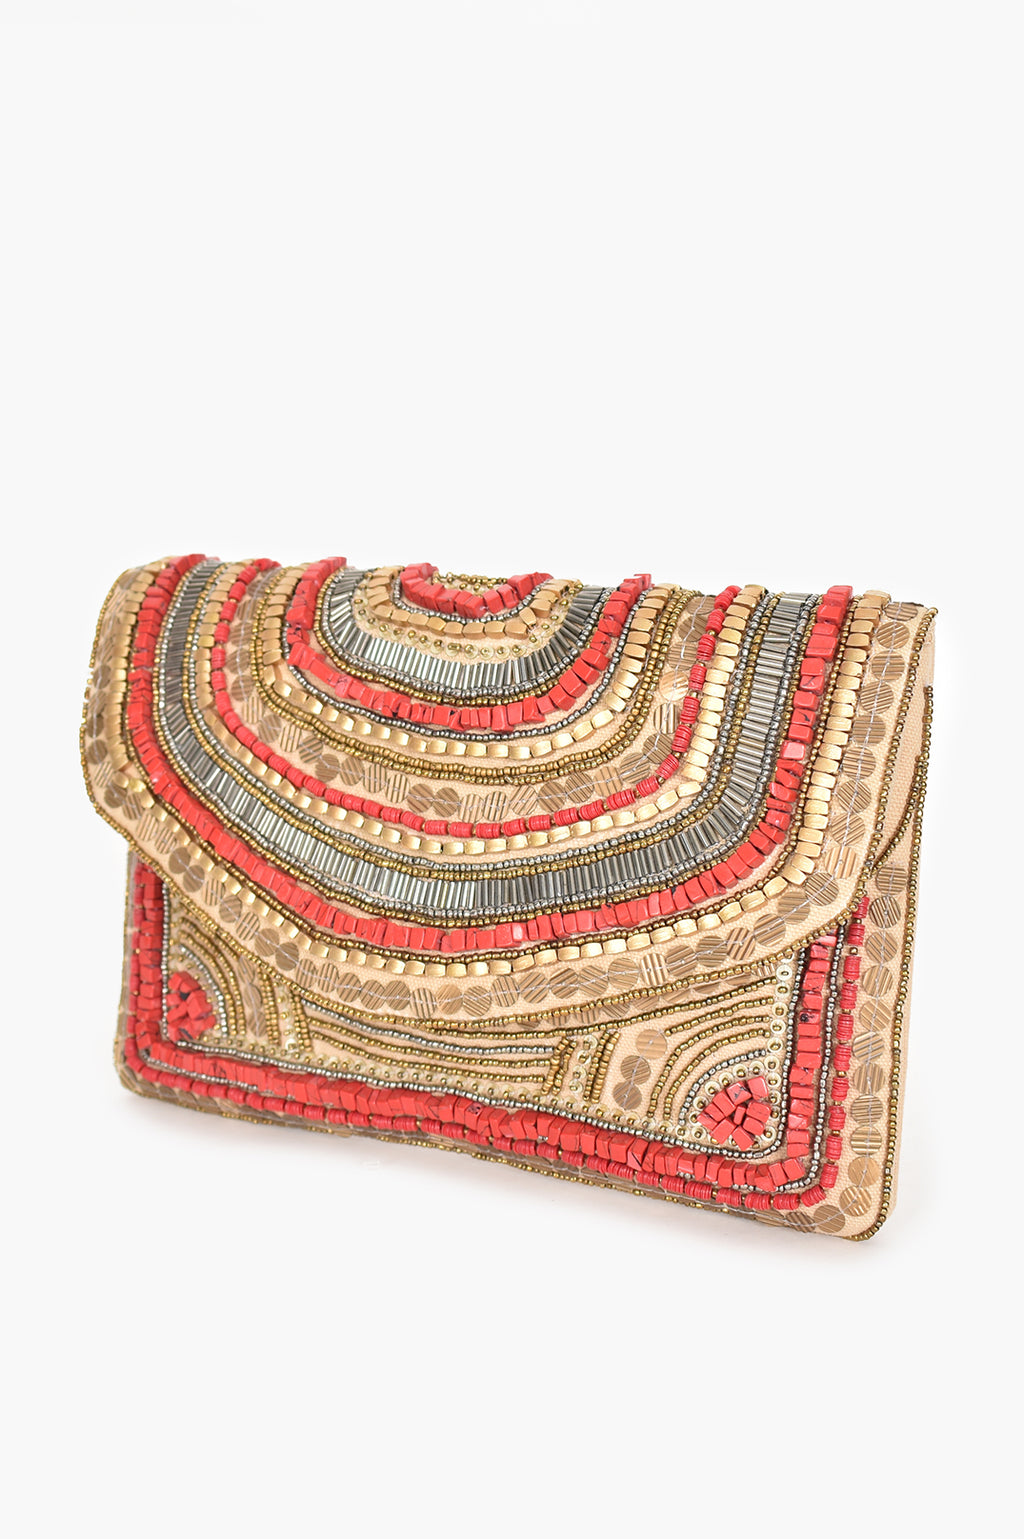 STONE BEADED ENVELOPE (RED/NATUAL) | CLUTCH